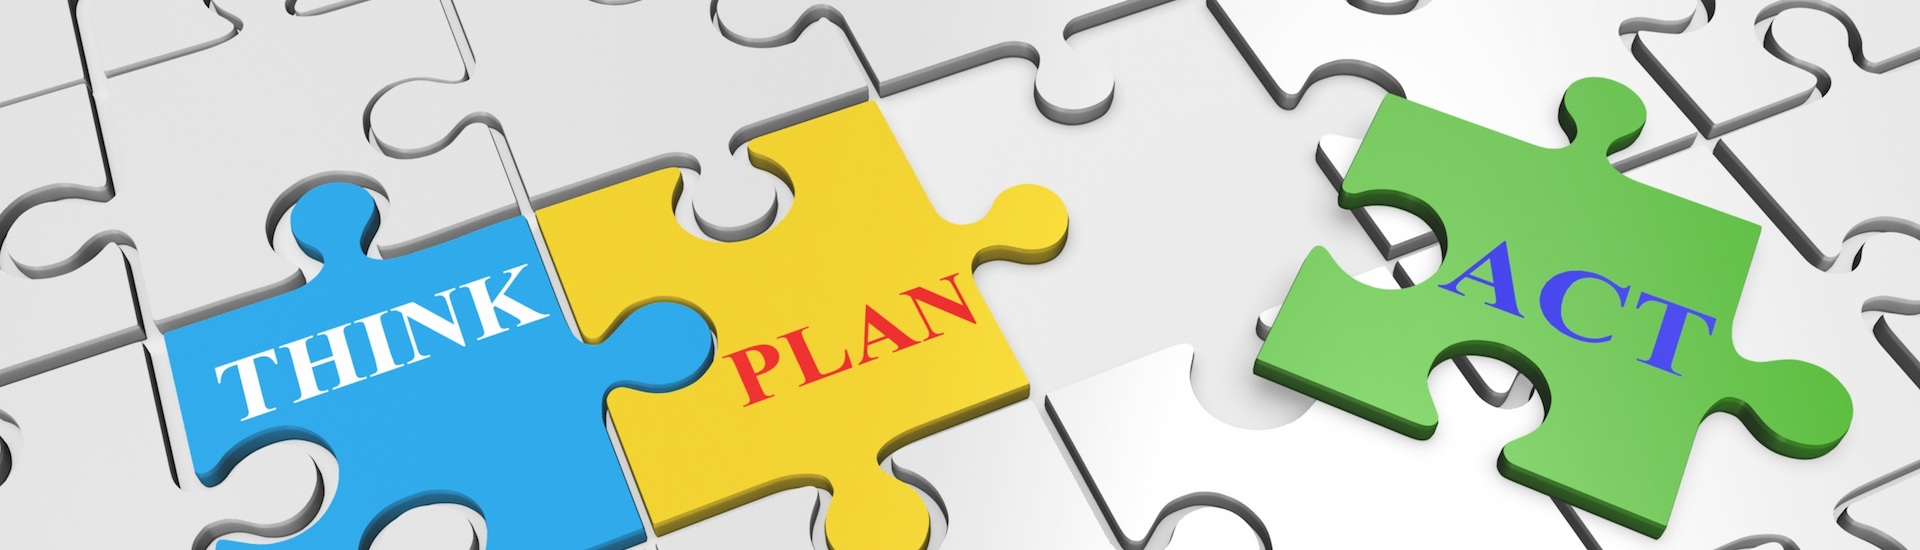 5-year-plan-slide